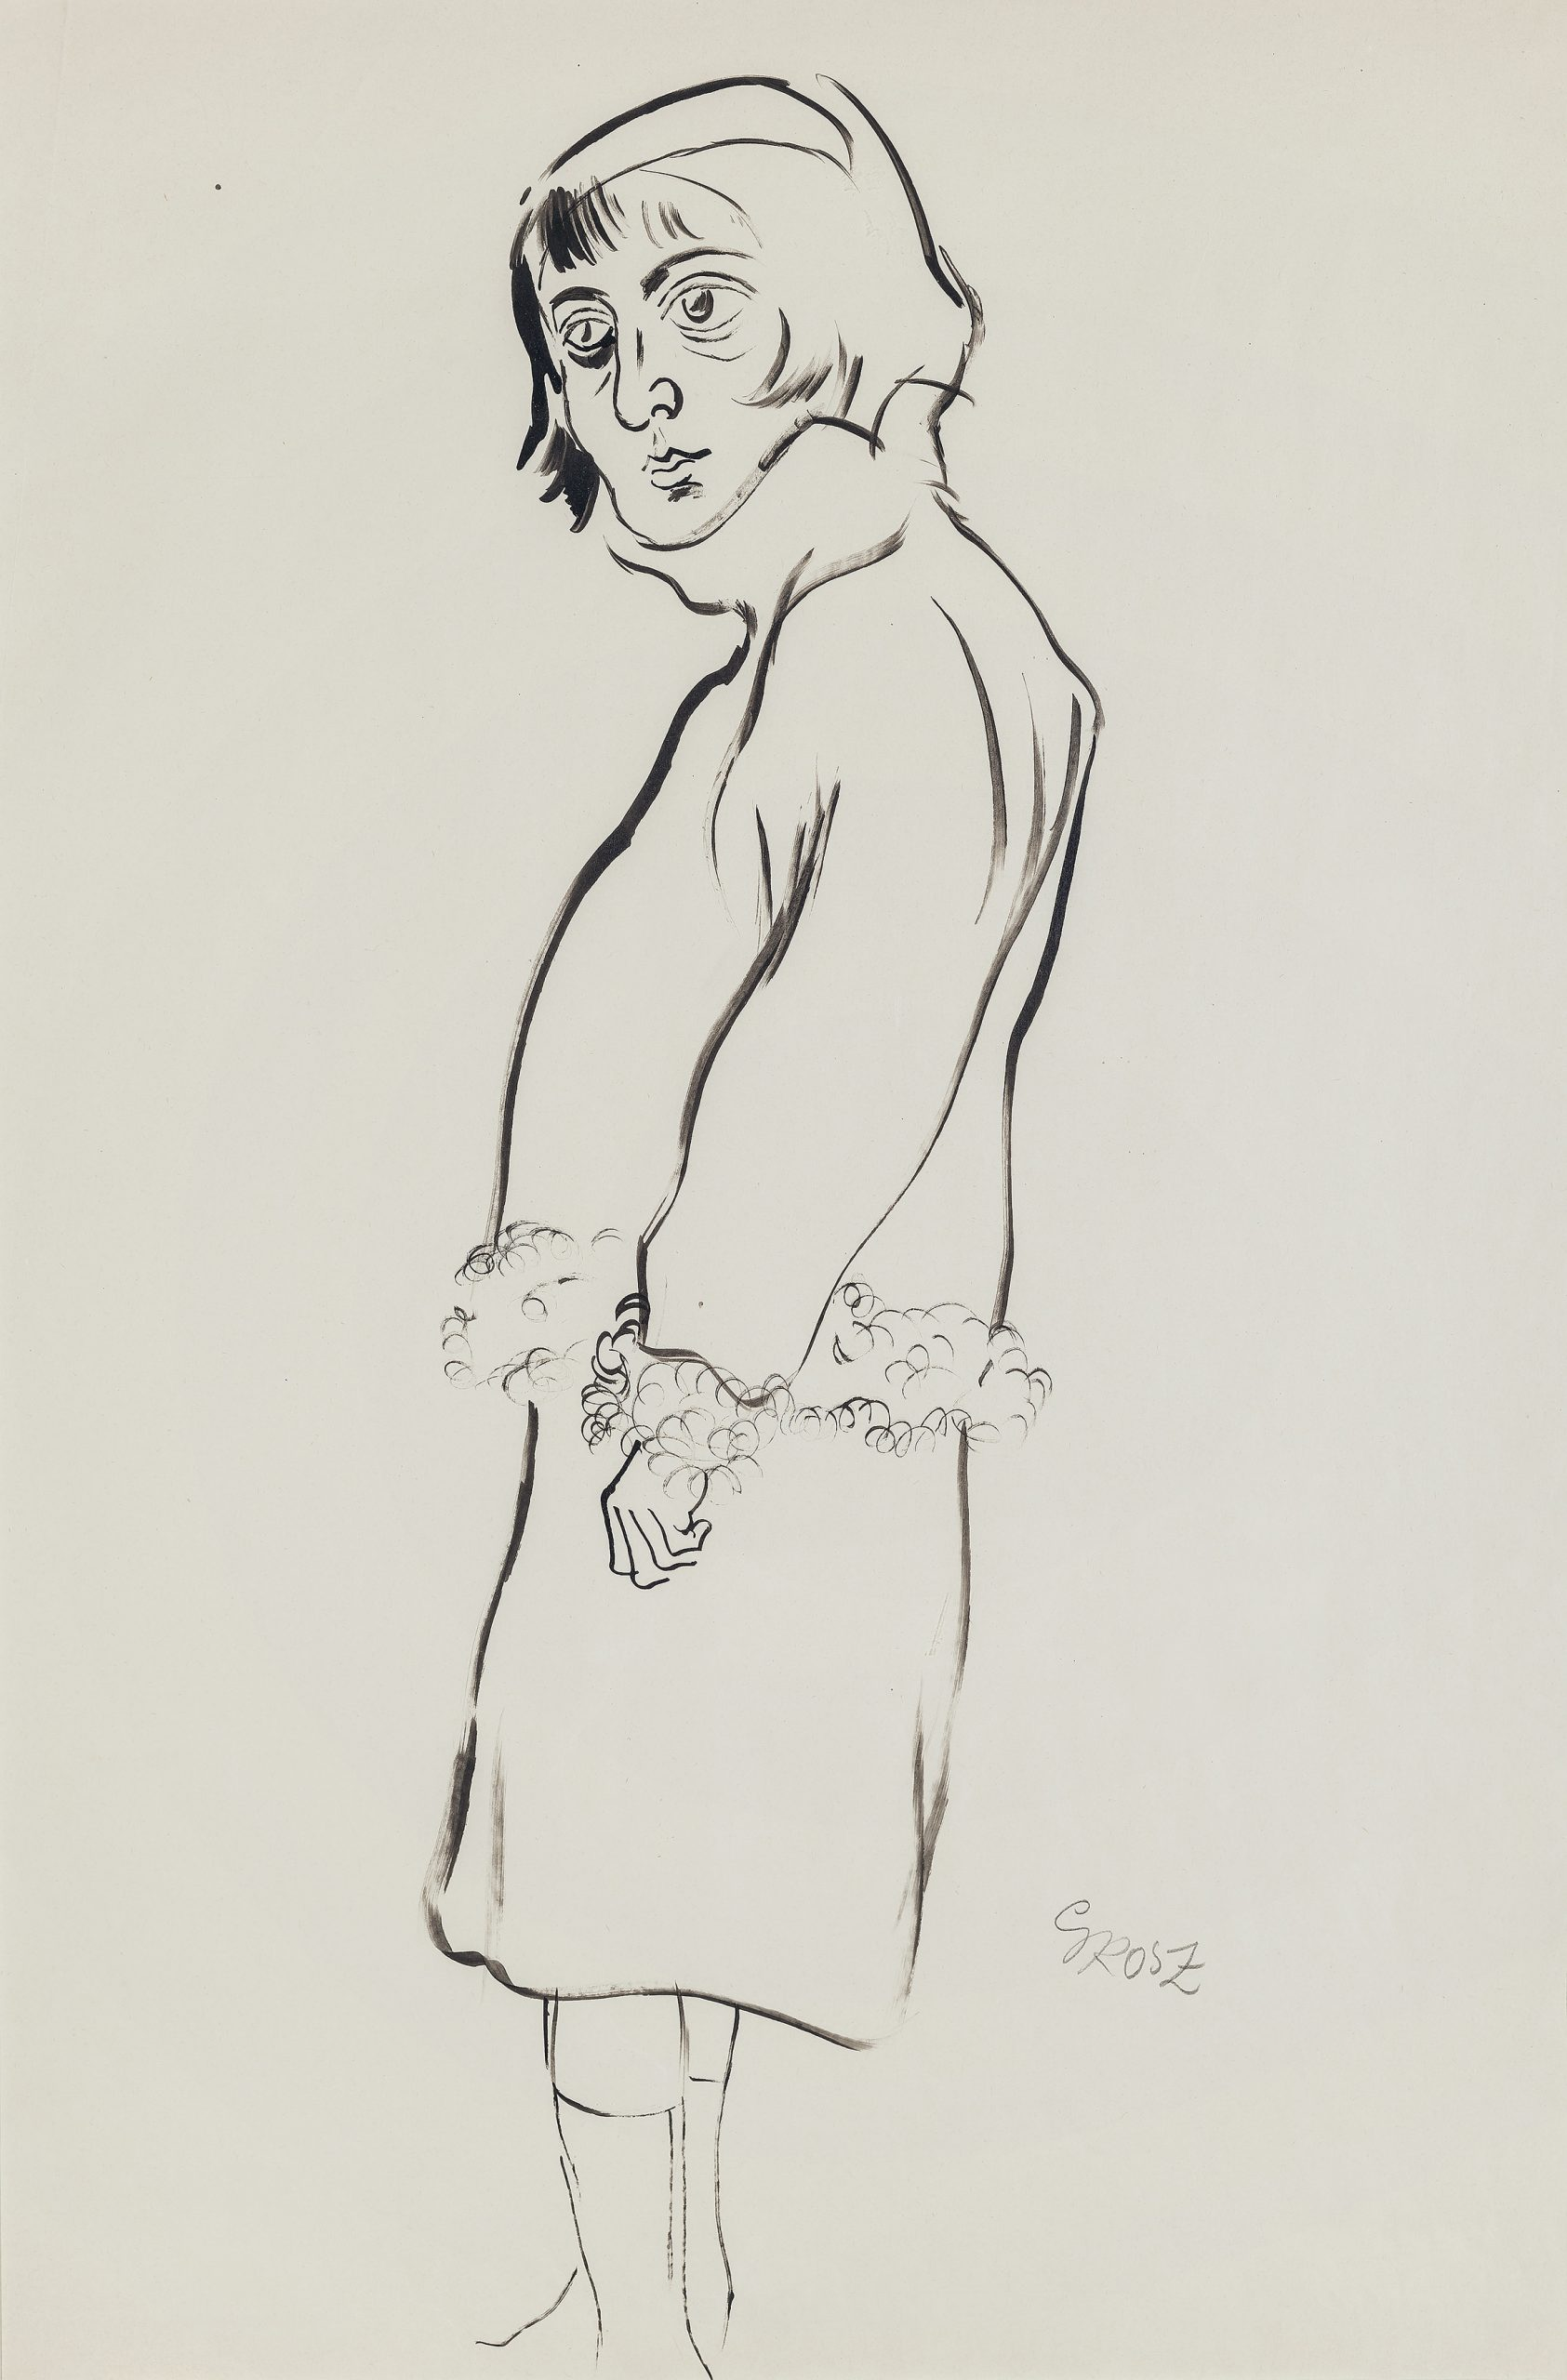 Woman with Fur-Trimmed Jacket by George Grosz